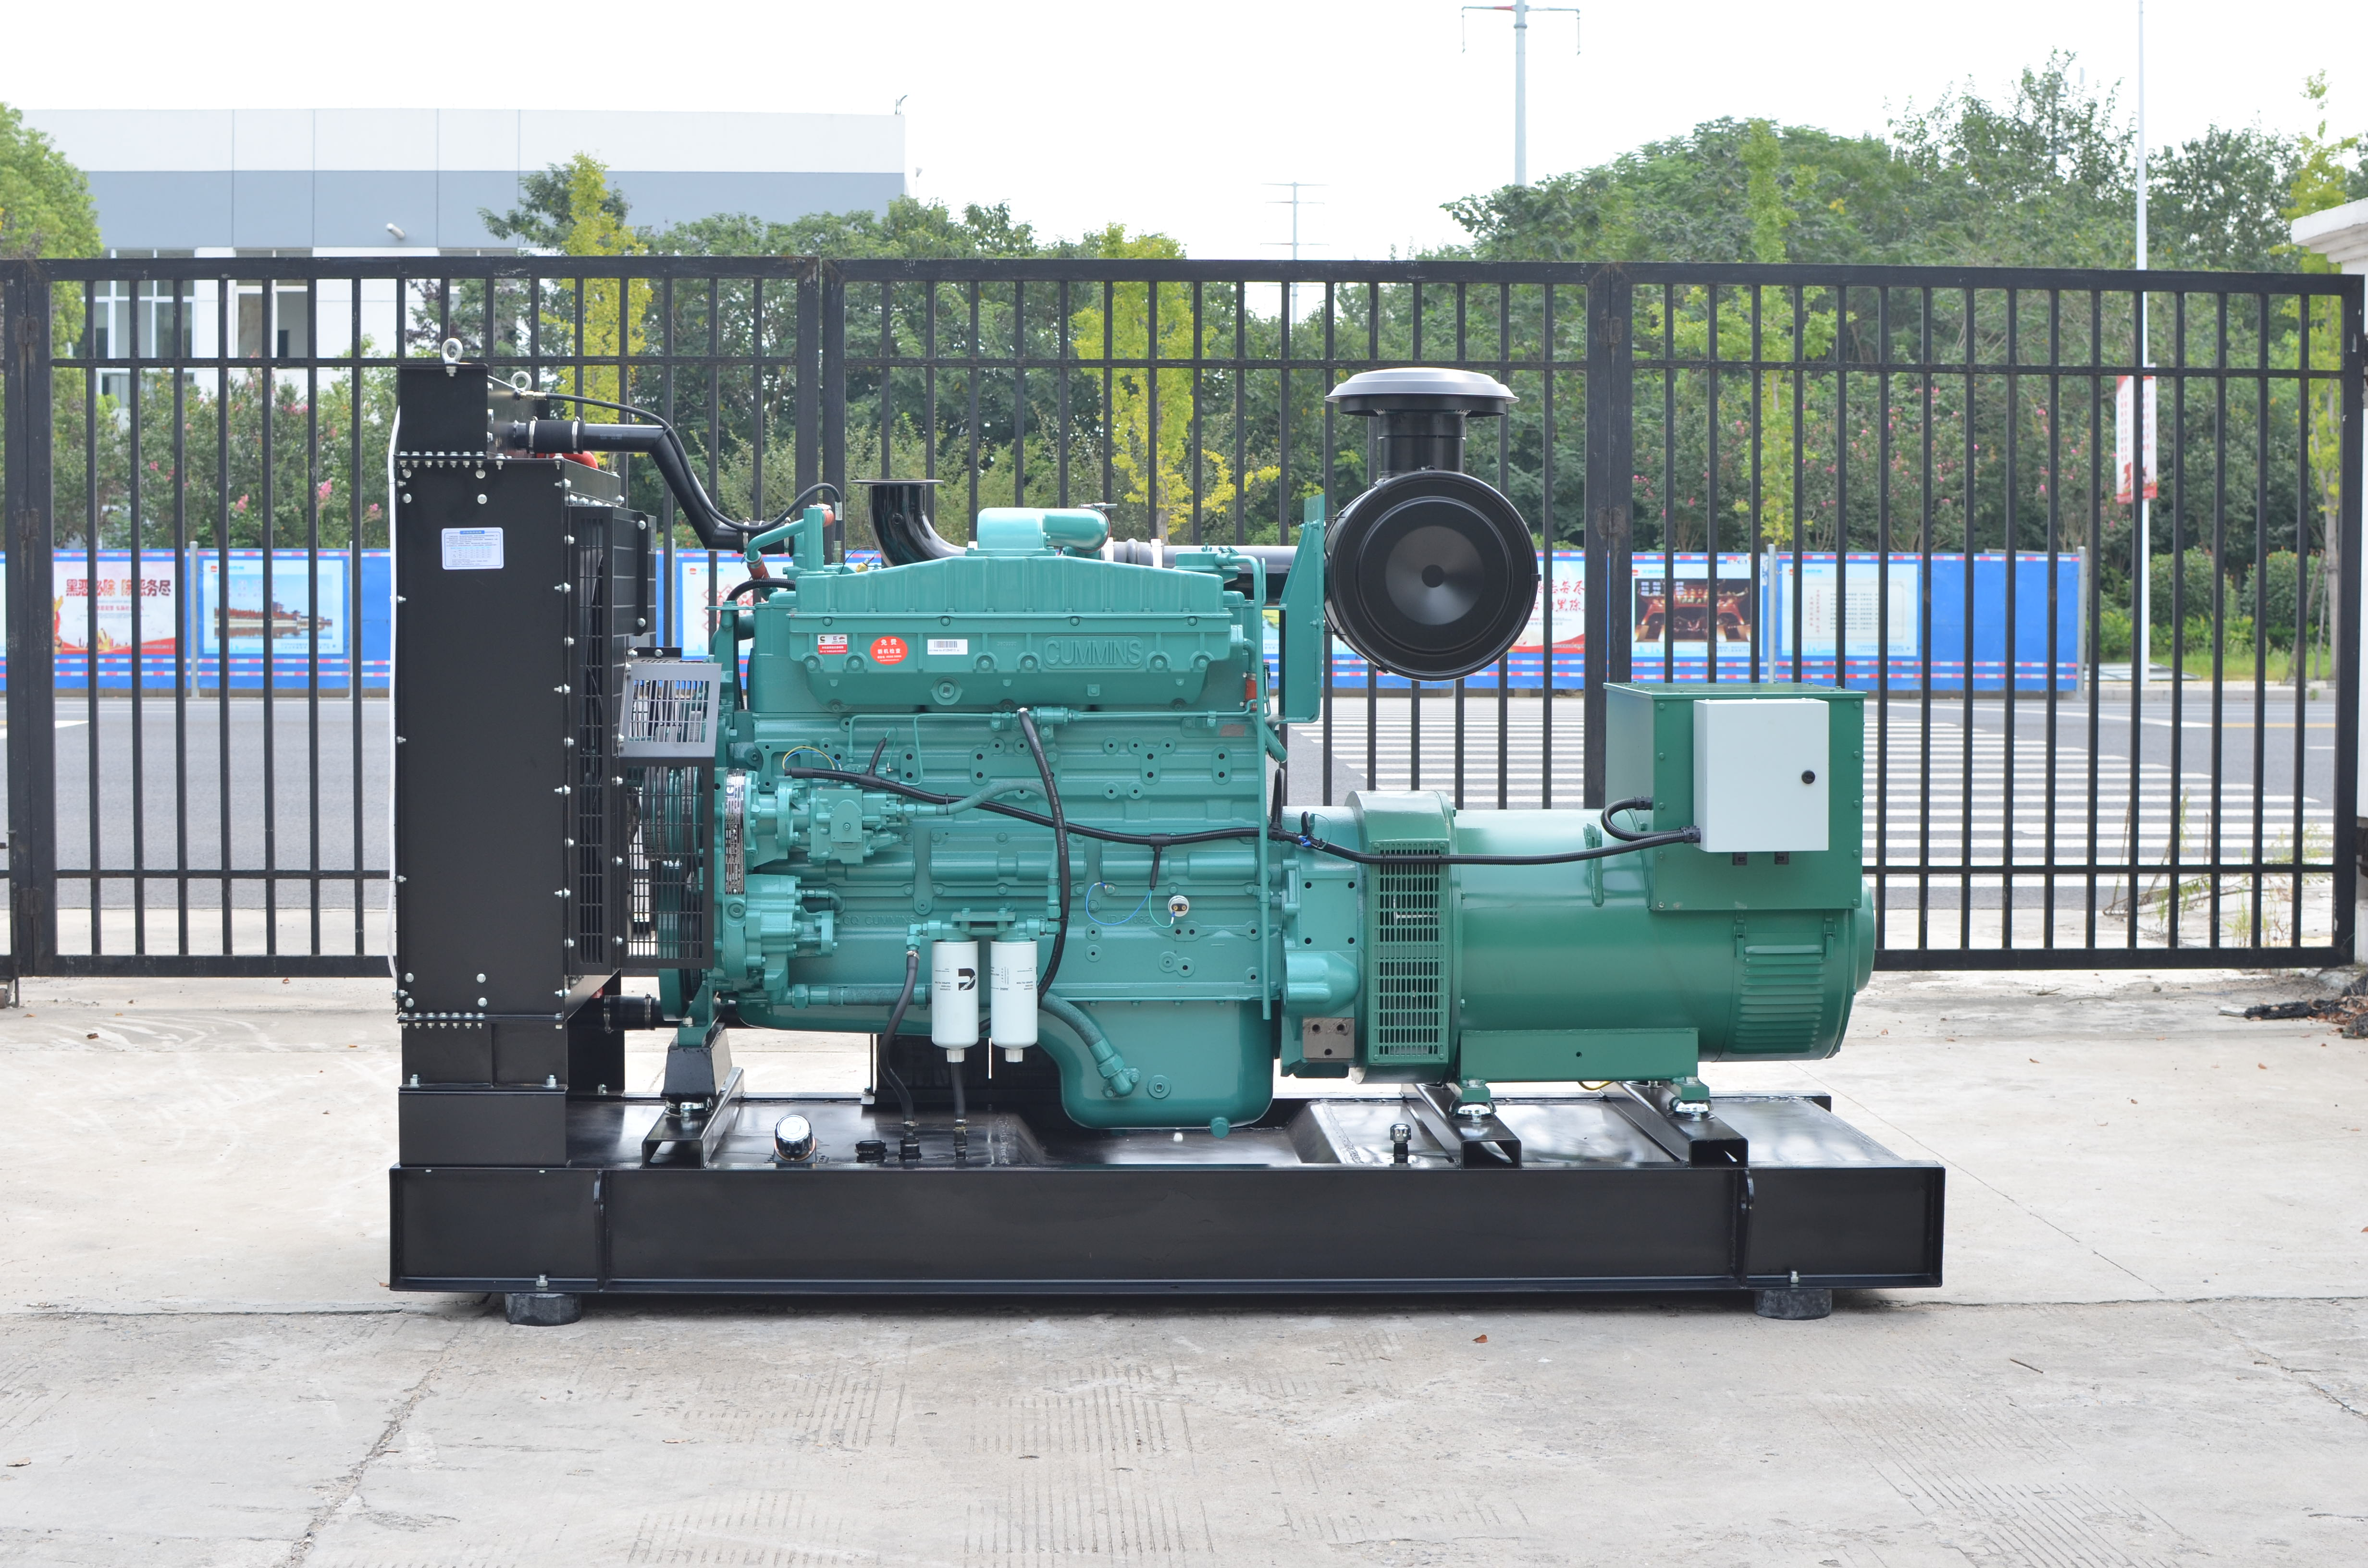 Hot sales Open Type 250kva diesel generator price powered by Cummins engine MTA11-G2